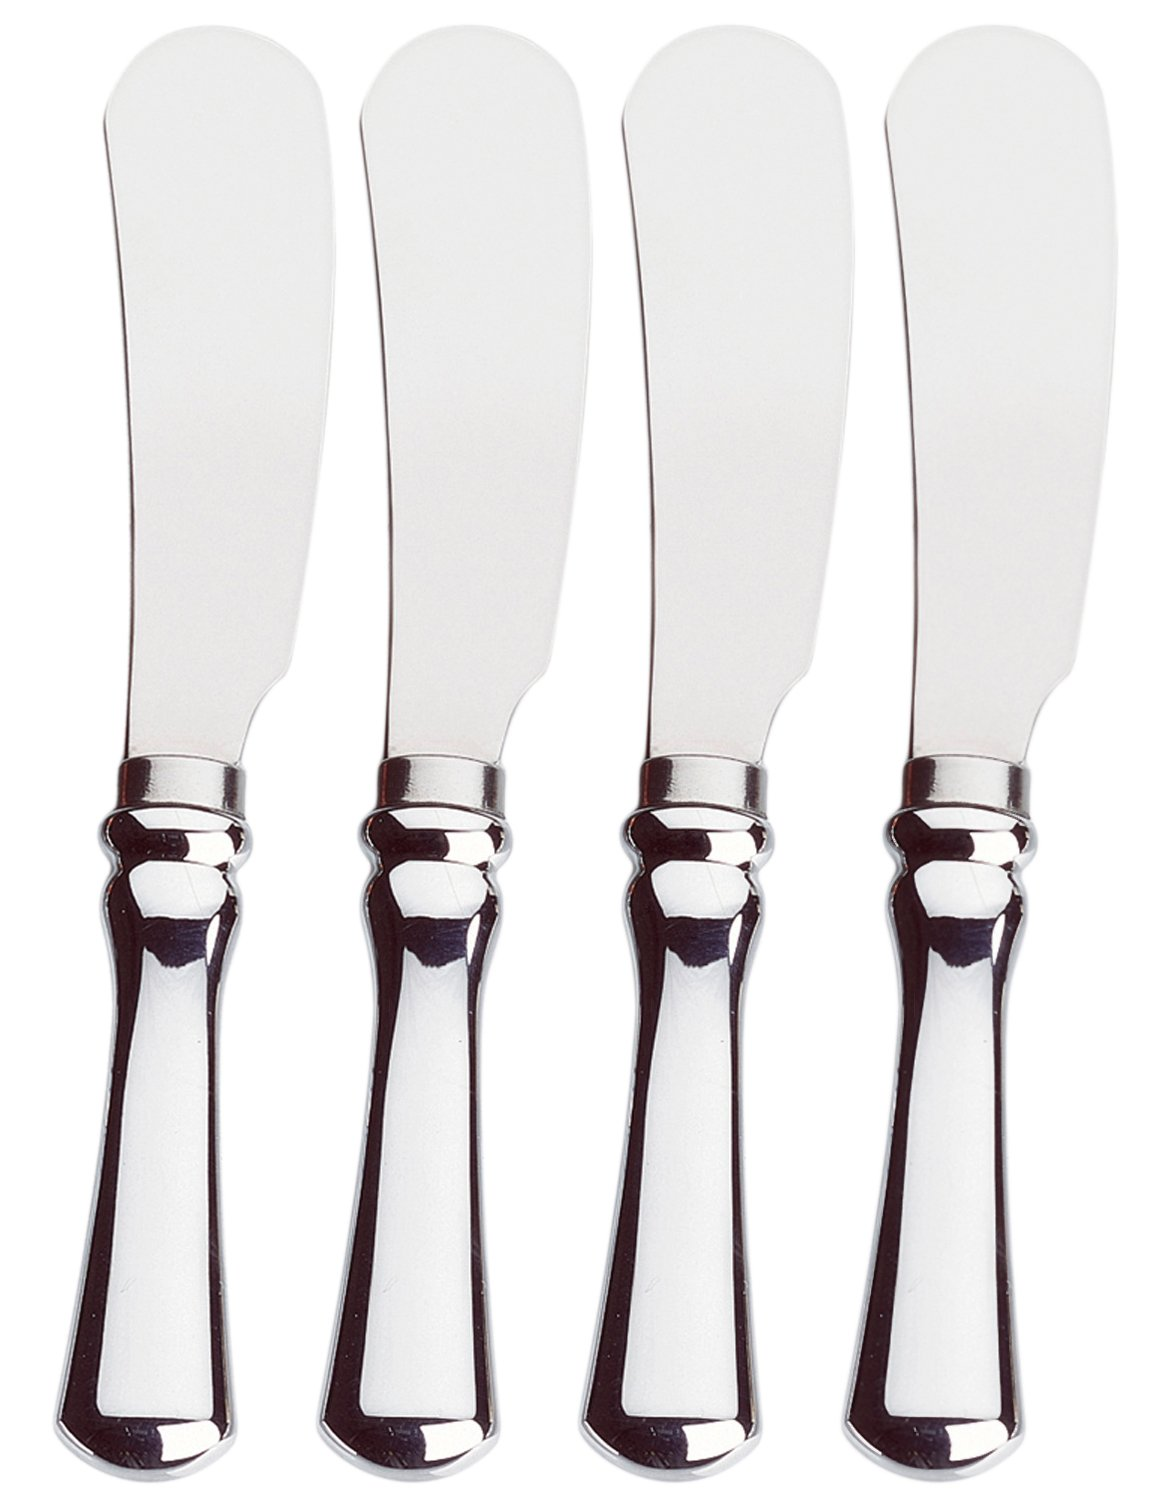 Amco Stainless Steel Spreader, Set of 4